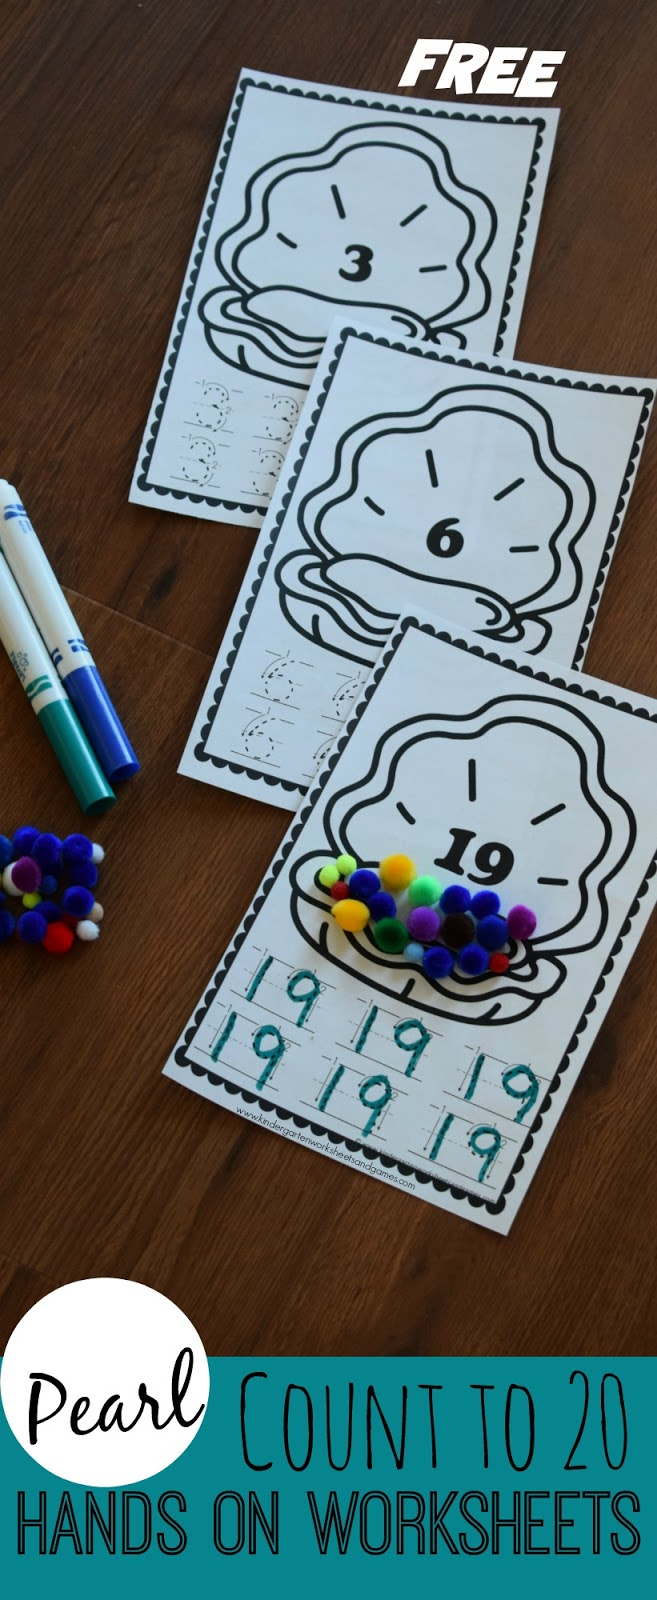 Kindergarten Worksheets and Games  FREE Pearl Count to 20 Hands on     FREE Pearl Count to 20 Hands on Worksheets   these are such a fun clever